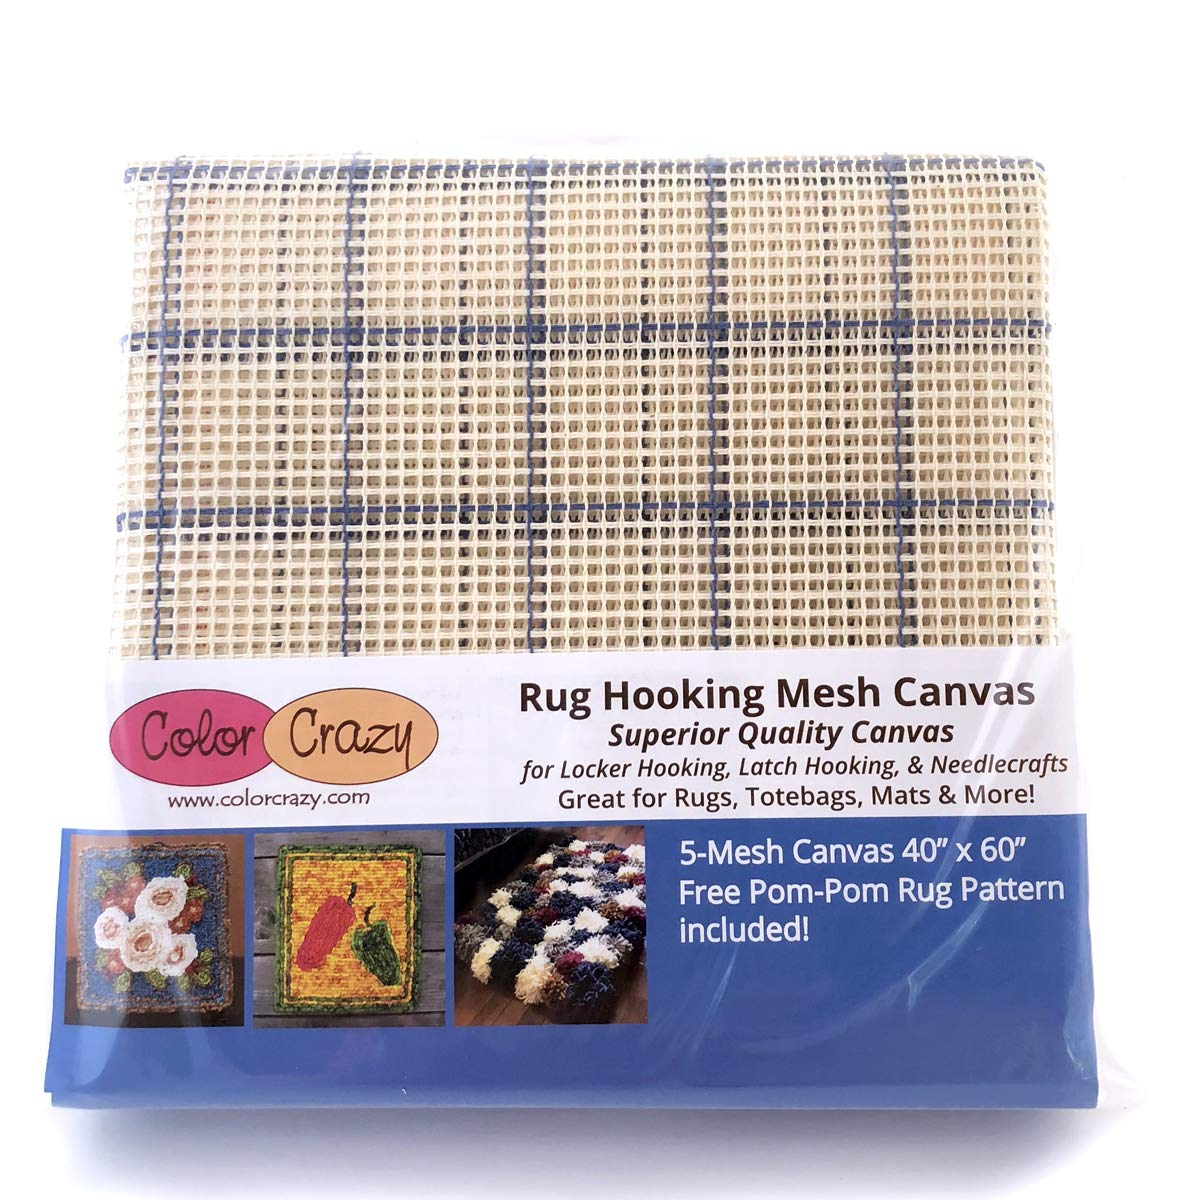 Rug Hooking Mesh Canvas - 5 Mesh (40 x 60) with Free Pattern Color Crazy